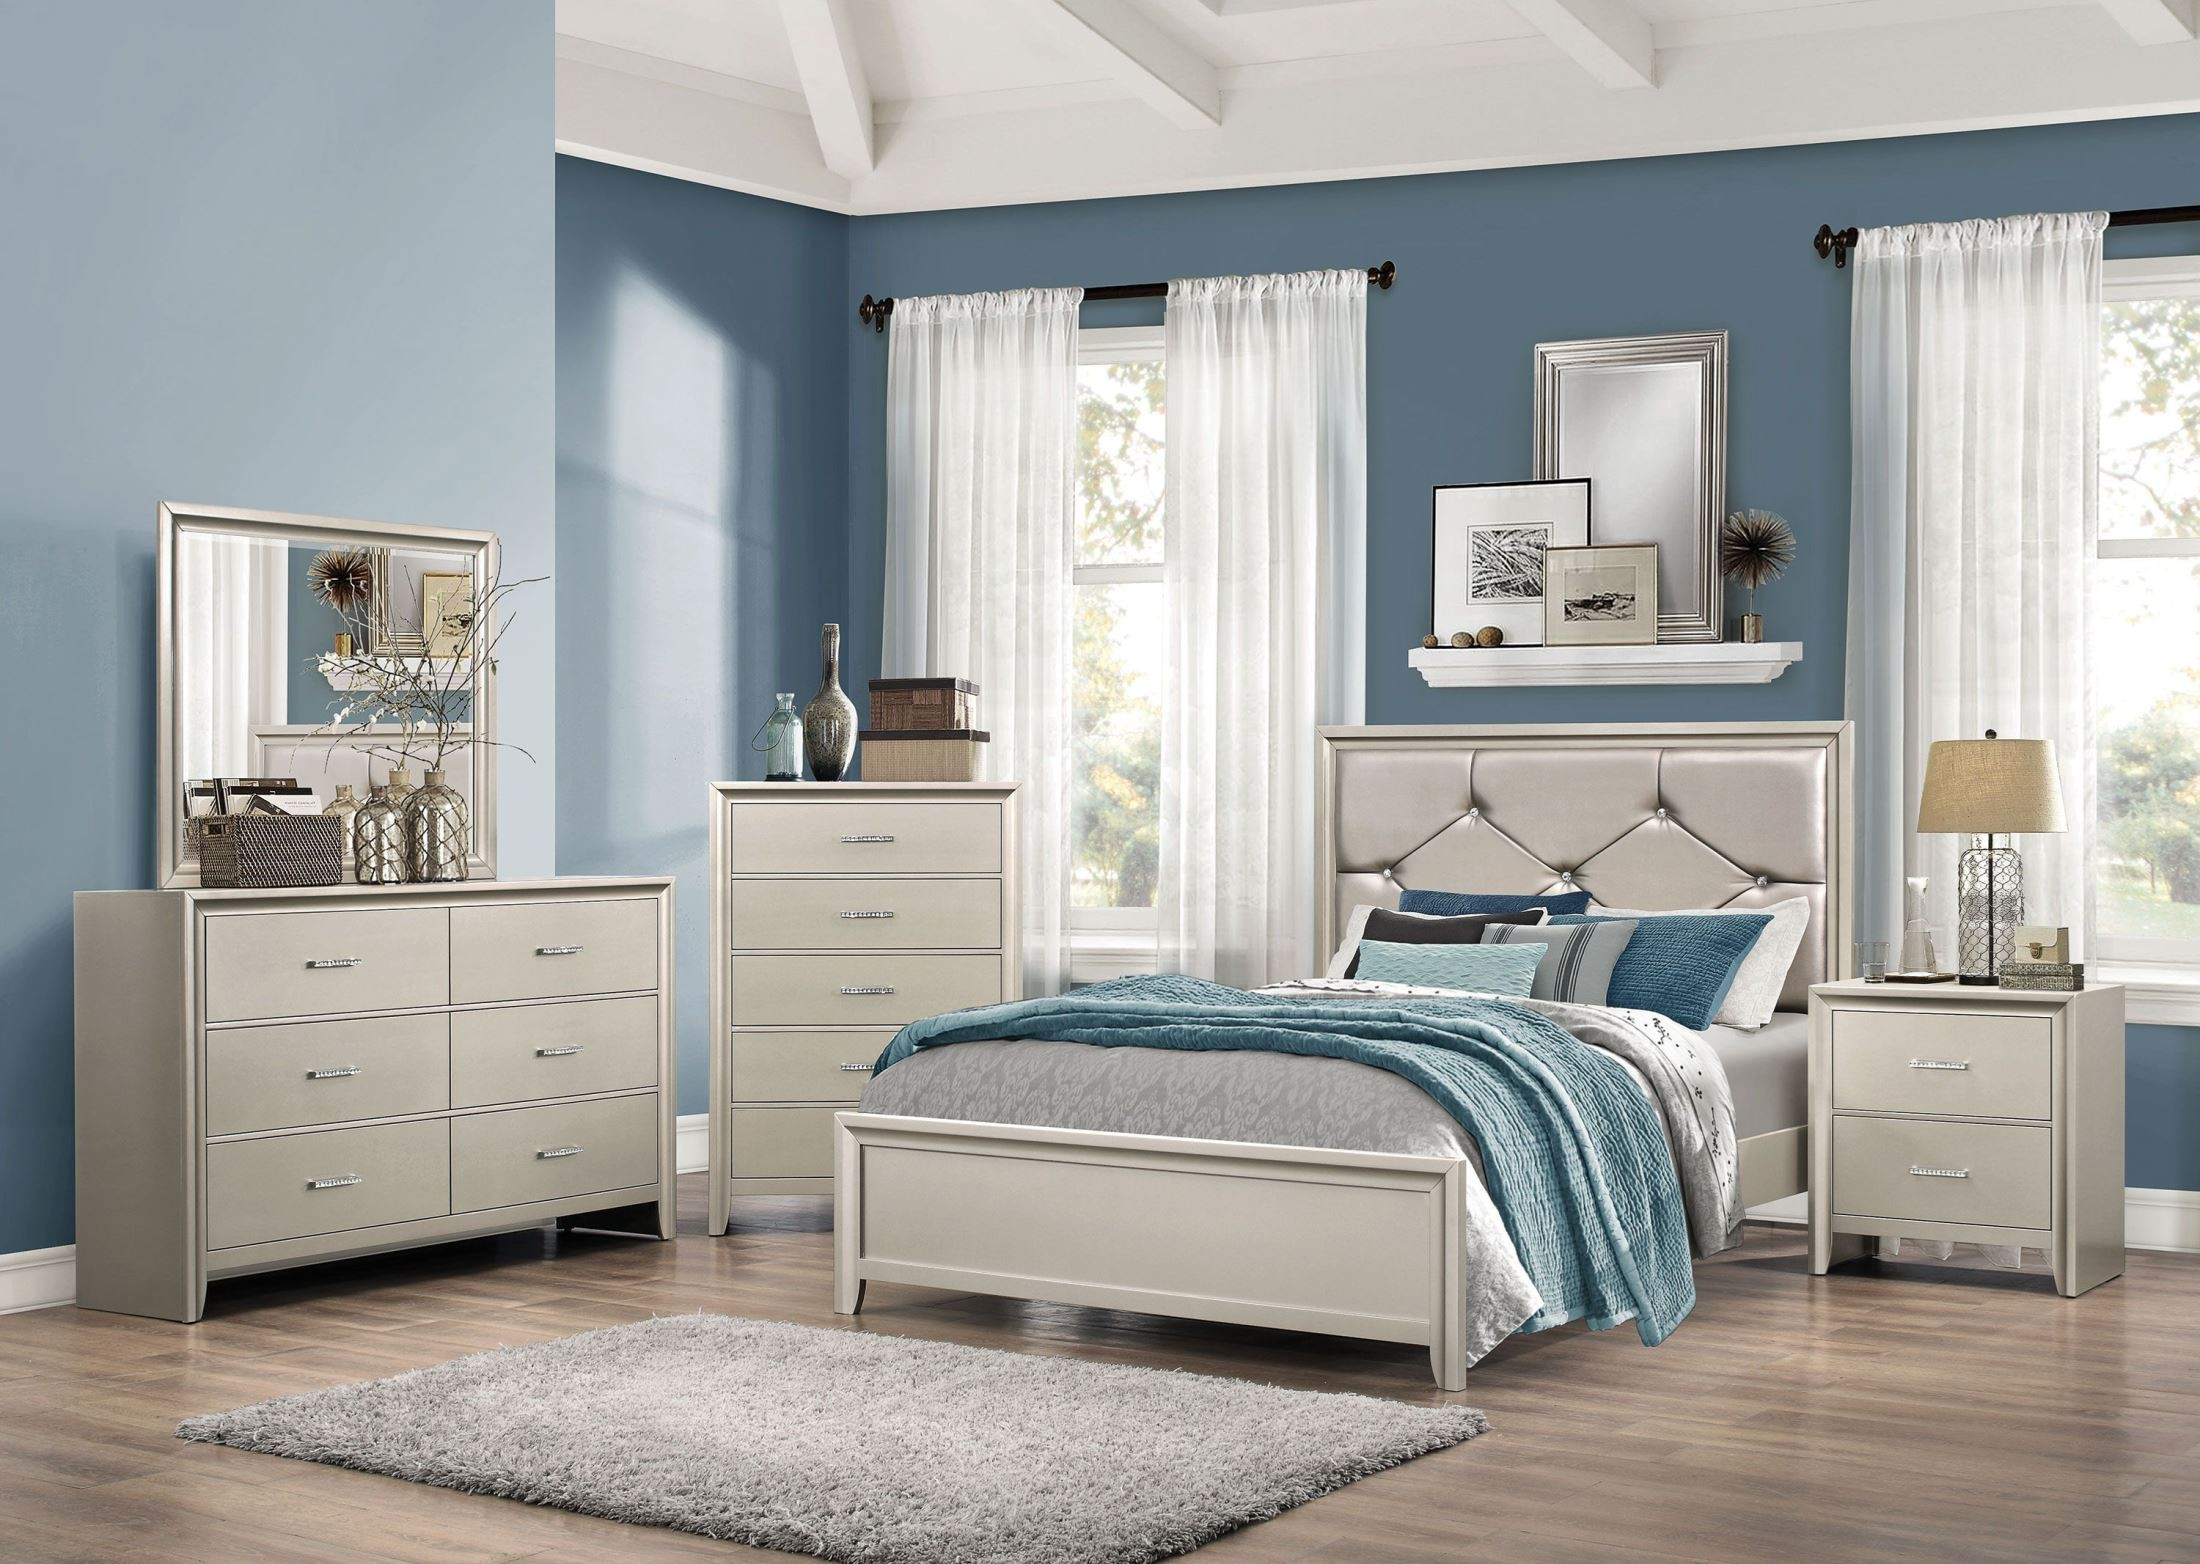 Lana Silver Panel Bedroom Set. Coaster Furniture